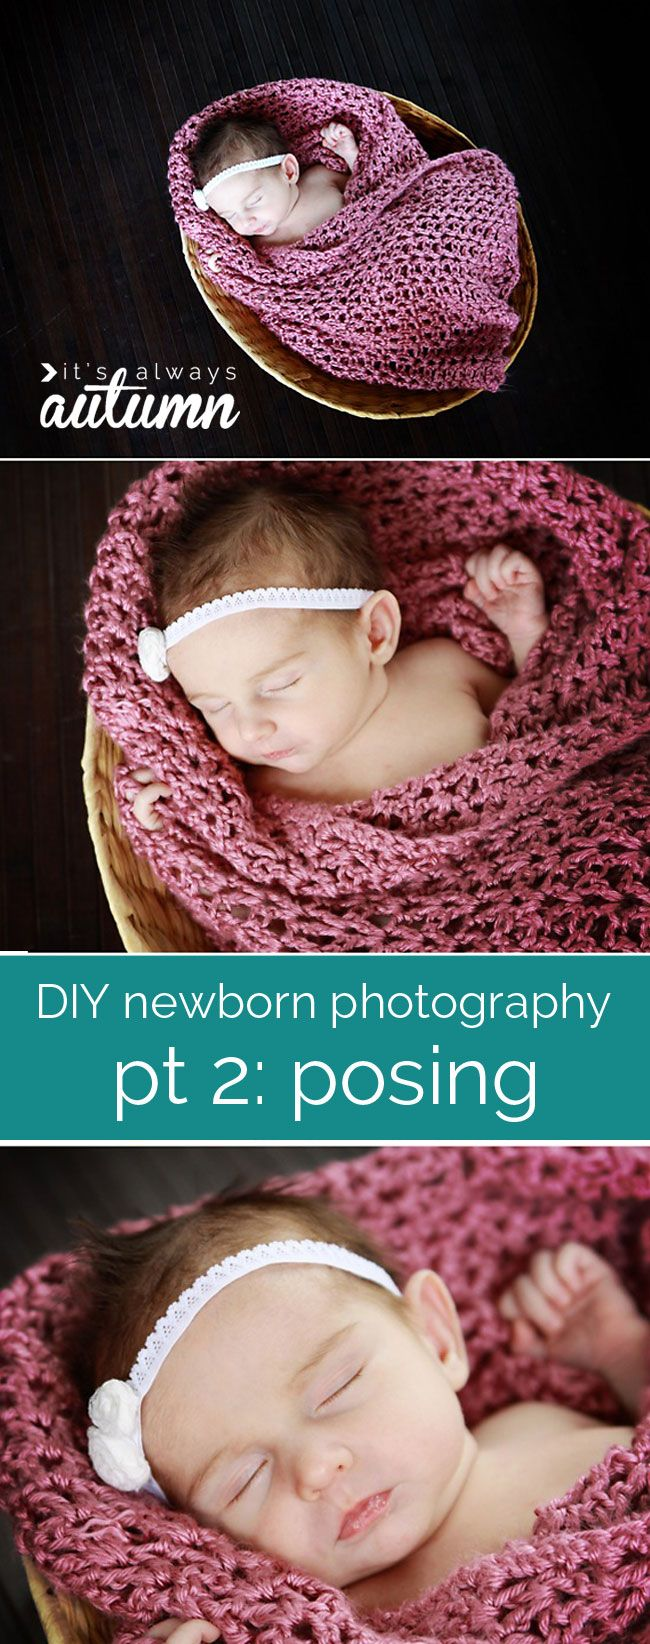 how to pose babies for a DIY newborn photoshoot in your own home